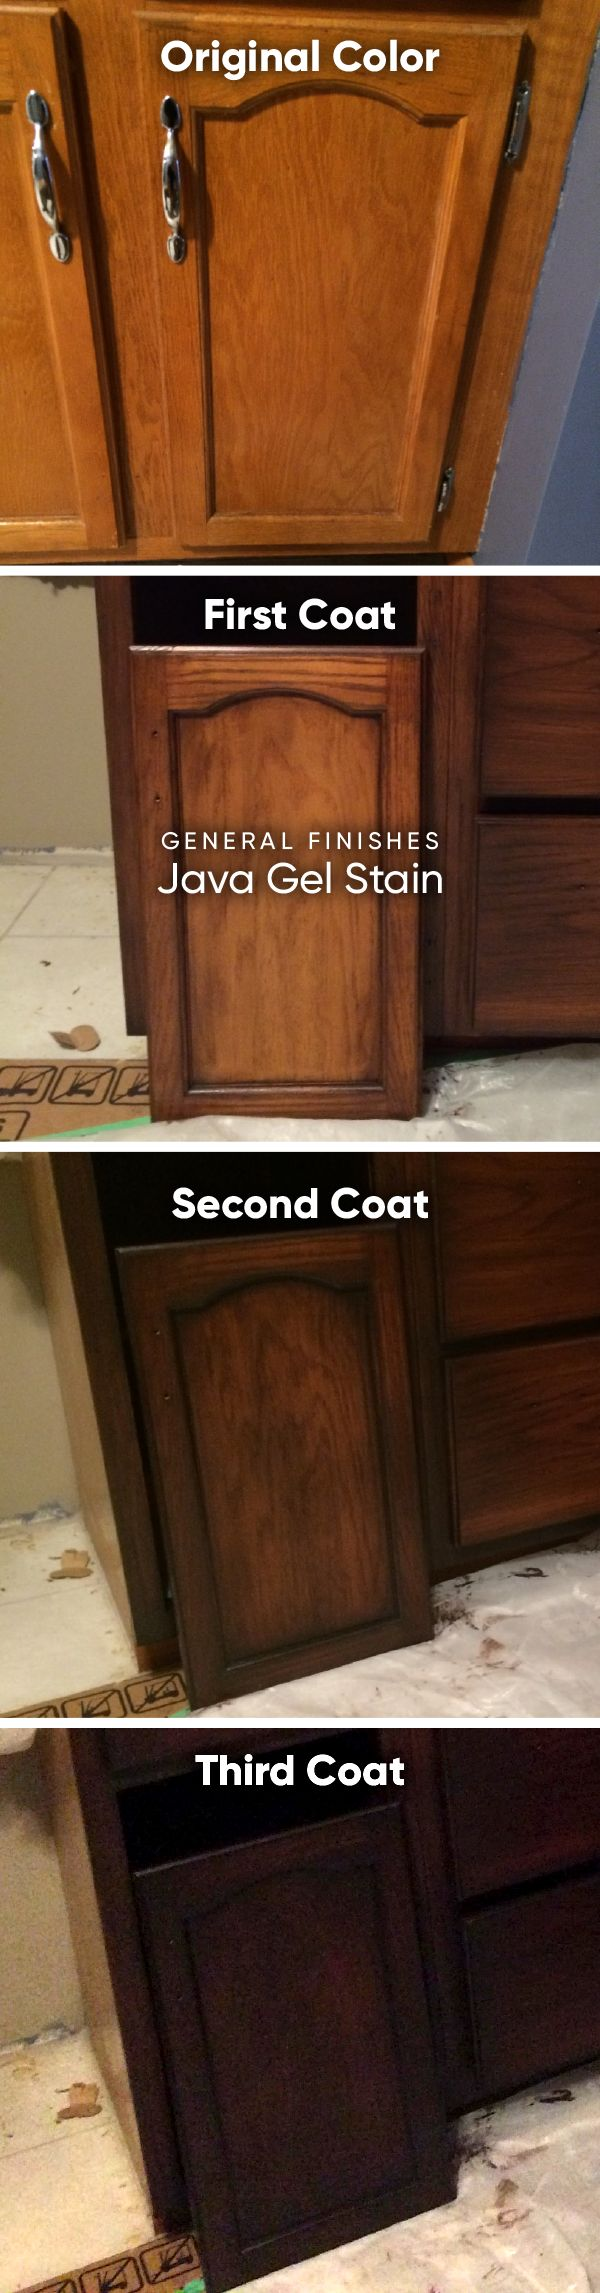 how to use gel stain on kitchen cabinets gel stain general finishes java diy house ideas 17431